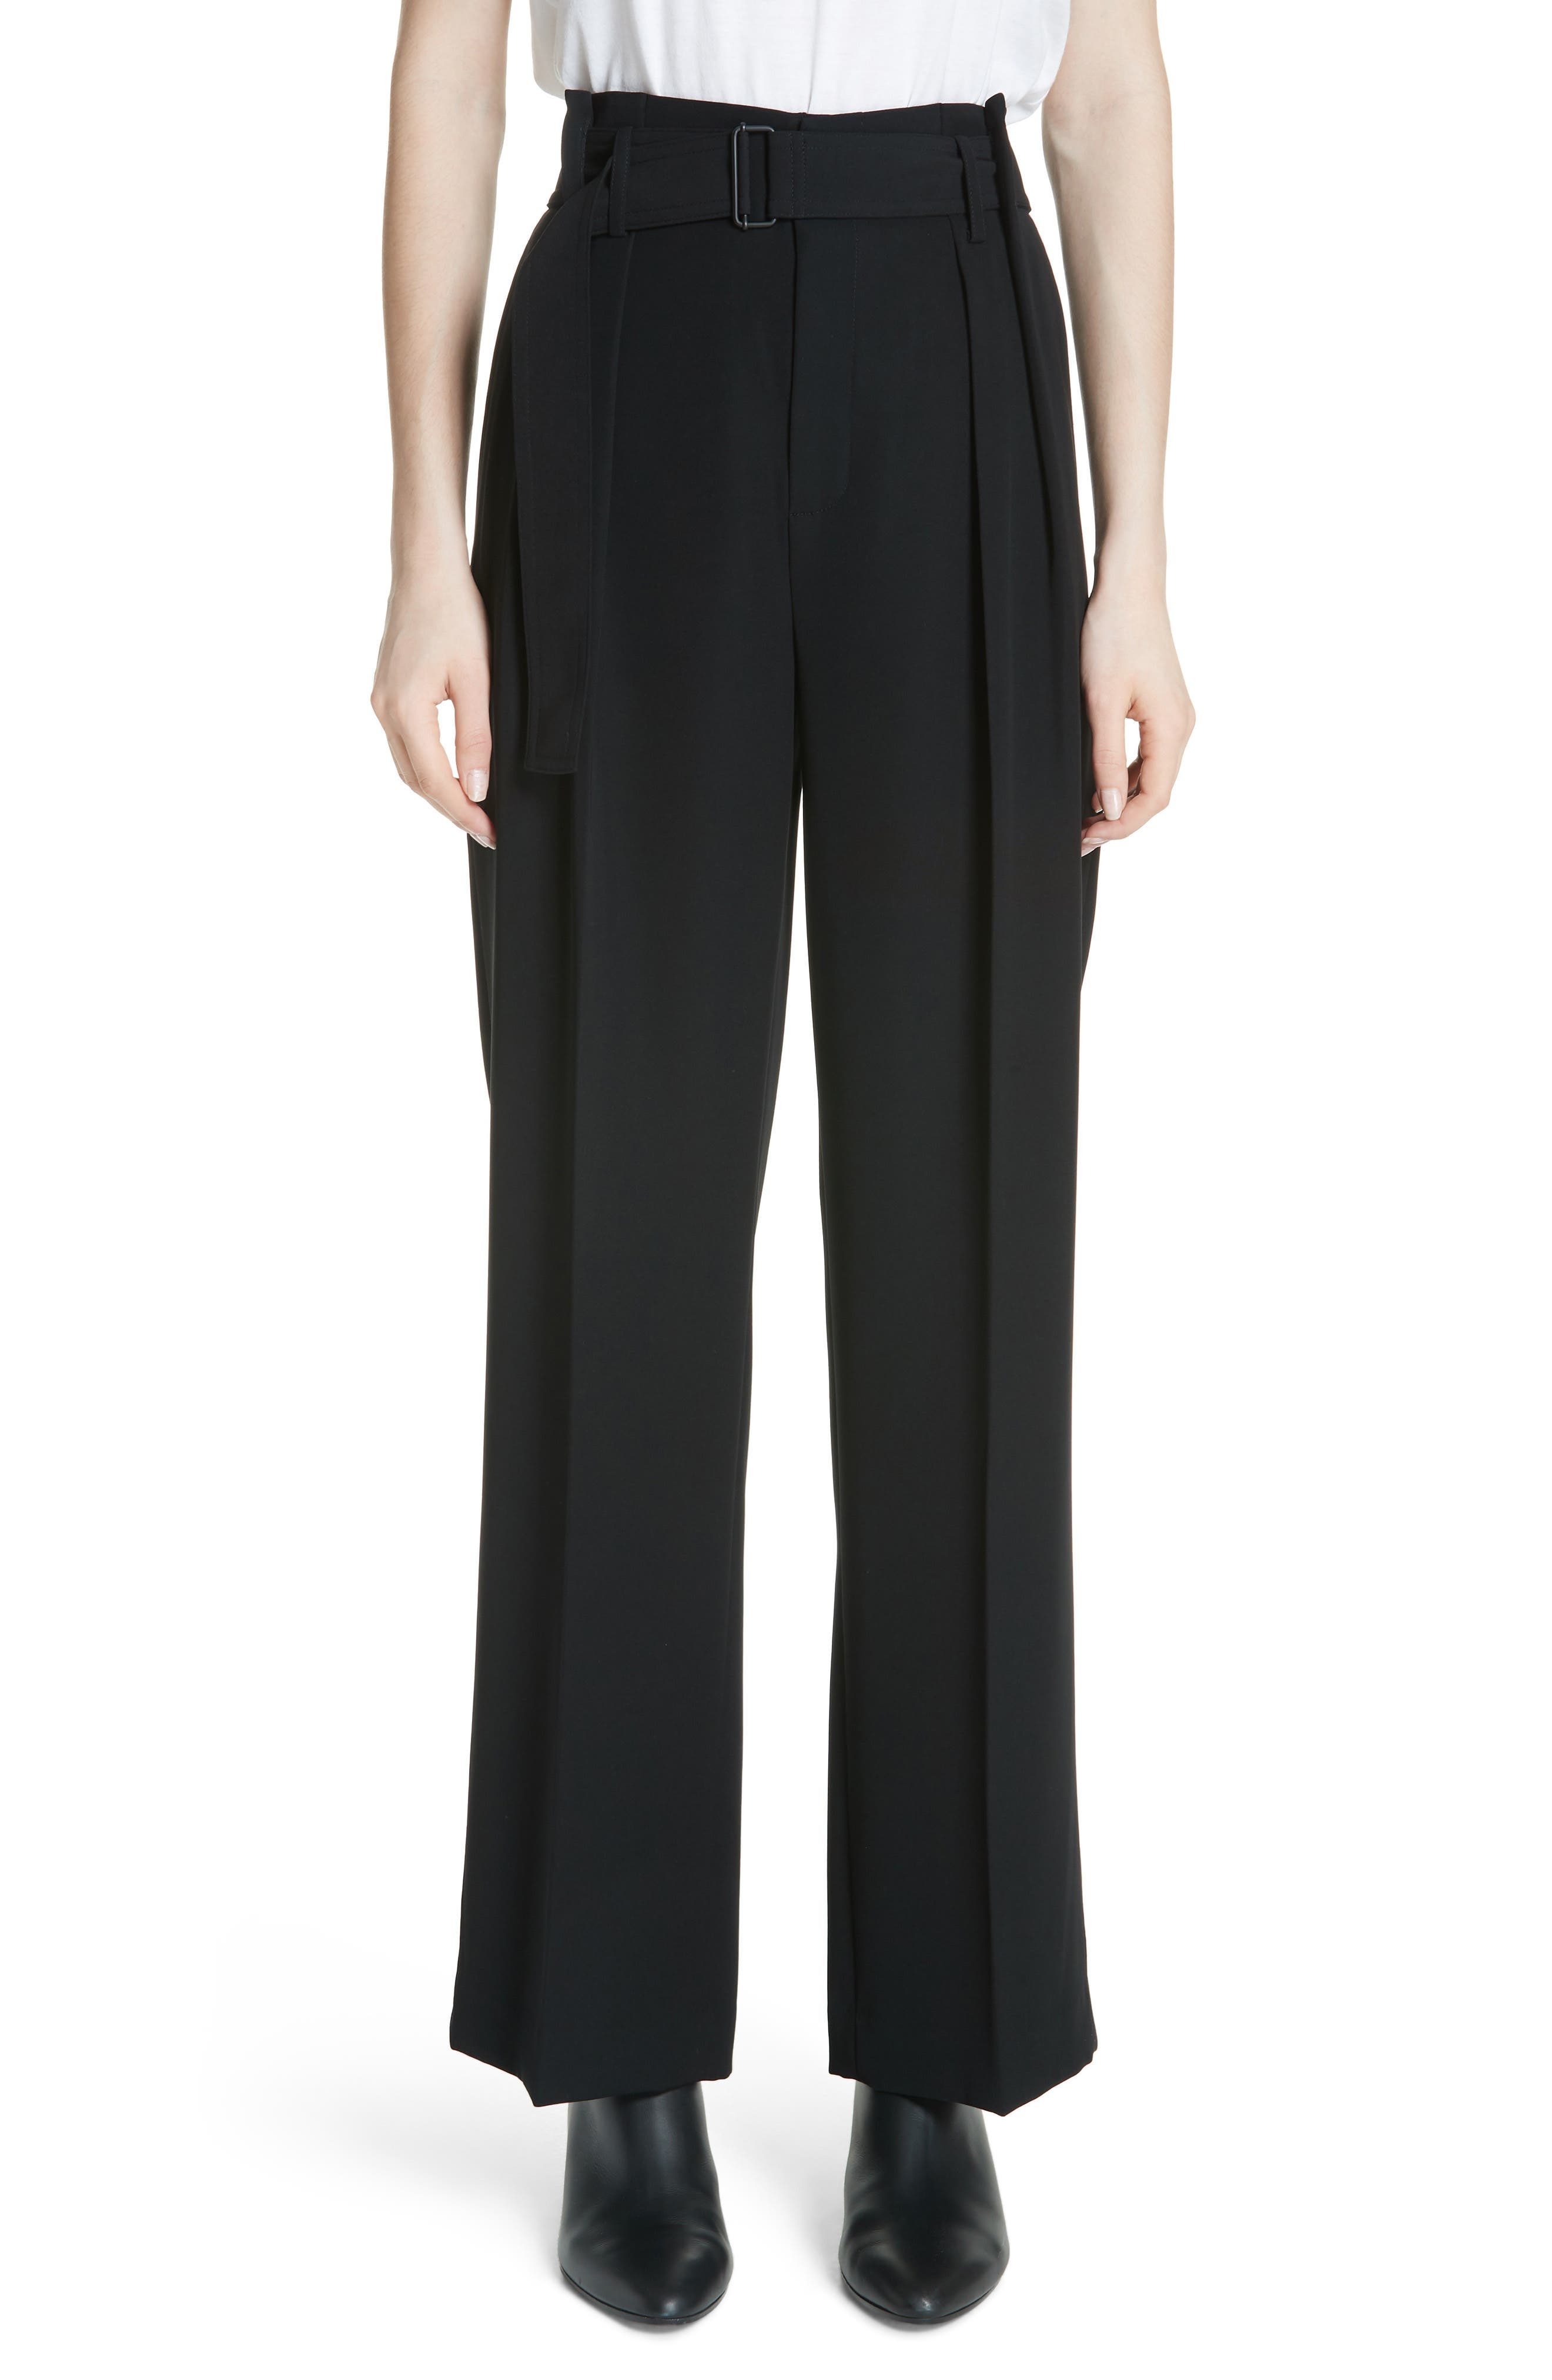 VINCE Belted Wide Leg Pants, Main, color, BLACK